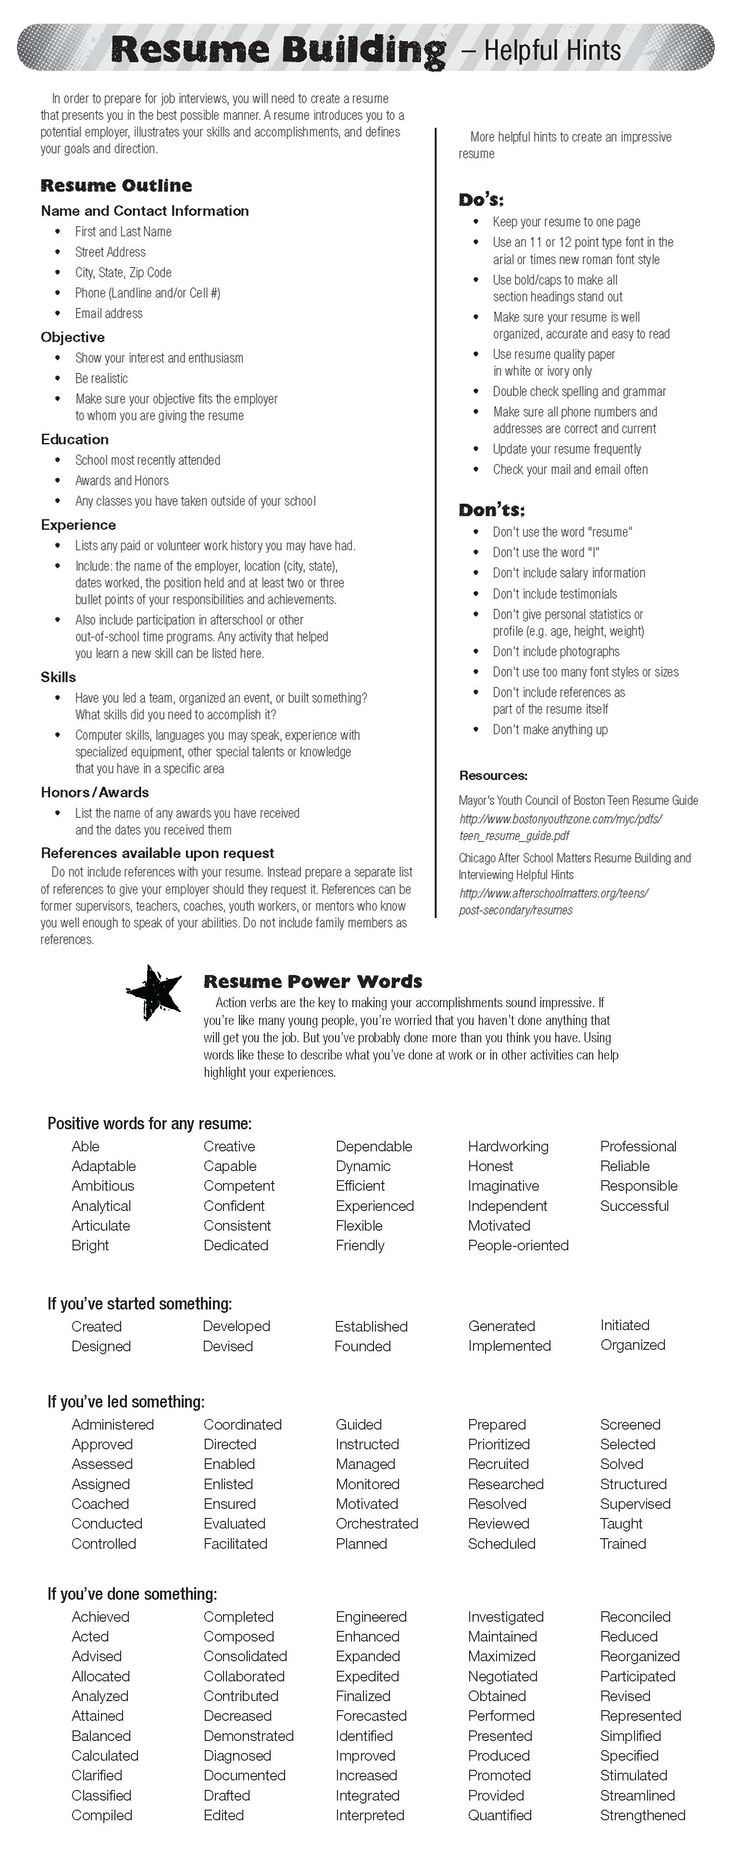 Picnictoimpeachus  Splendid  Ideas About Resume On Pinterest  Cv Format Resume Cv And  With Luxury  Ideas About Resume On Pinterest  Cv Format Resume Cv And Resume Templates With Amusing Licensed Practical Nurse Resume Also Hr Executive Resume In Addition Sample Resume Executive Assistant And Data Entry Resumes As Well As Windows Resume Additionally Good Descriptive Words For Resume From Pinterestcom With Picnictoimpeachus  Luxury  Ideas About Resume On Pinterest  Cv Format Resume Cv And  With Amusing  Ideas About Resume On Pinterest  Cv Format Resume Cv And Resume Templates And Splendid Licensed Practical Nurse Resume Also Hr Executive Resume In Addition Sample Resume Executive Assistant From Pinterestcom